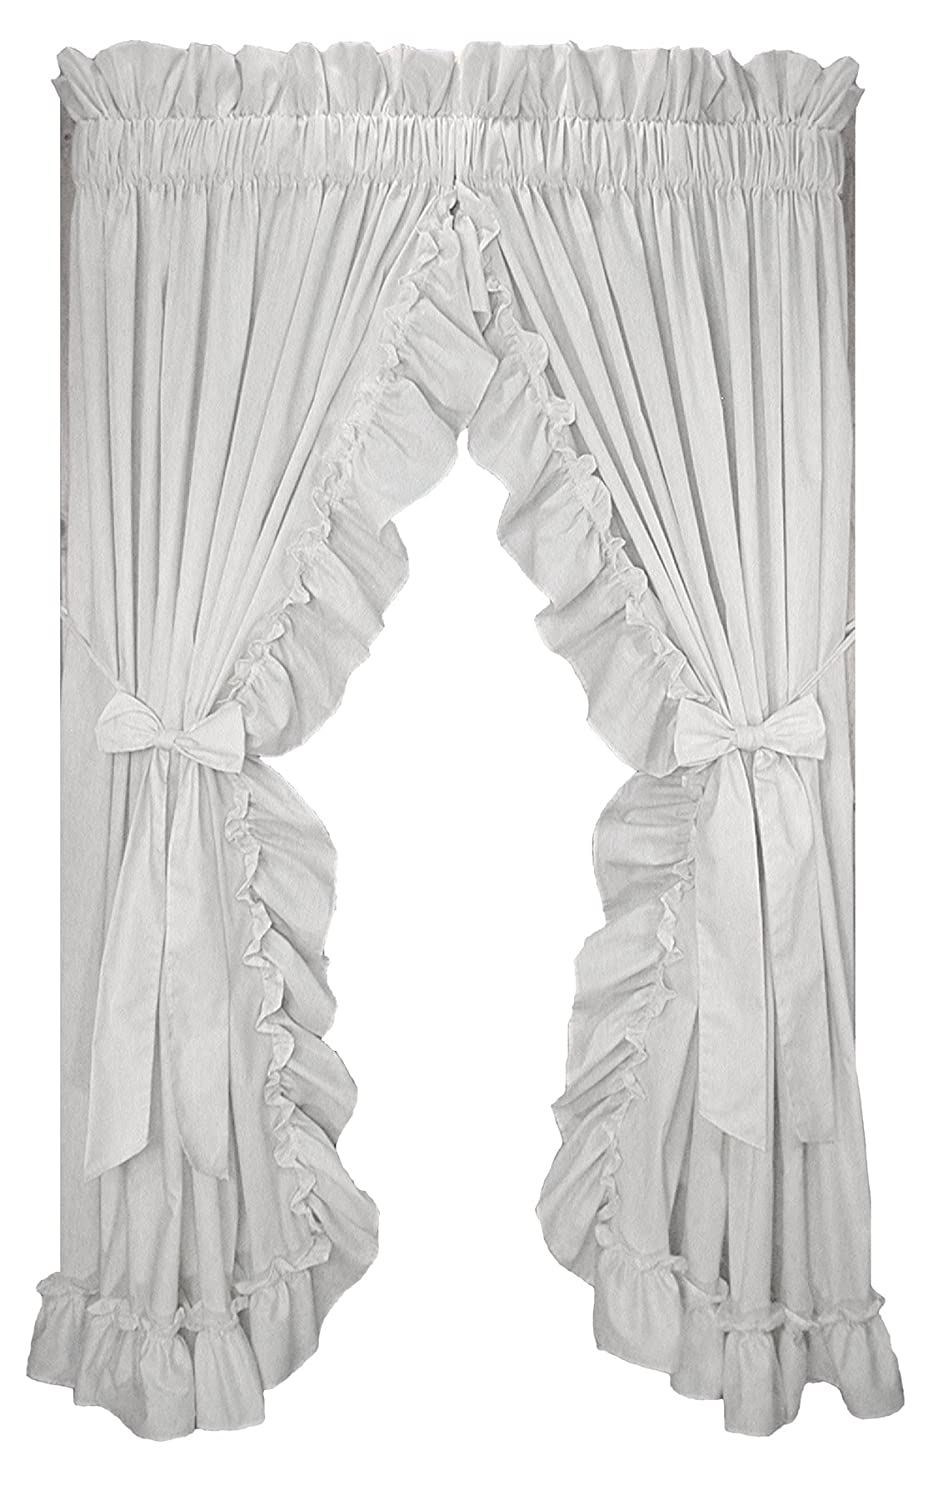 Window Toppers Stephanie Country Ruffle Priscilla Curtains Pair 86-Inch-by-63-Inch - 1 1/2 Inch Rod Pocket, White